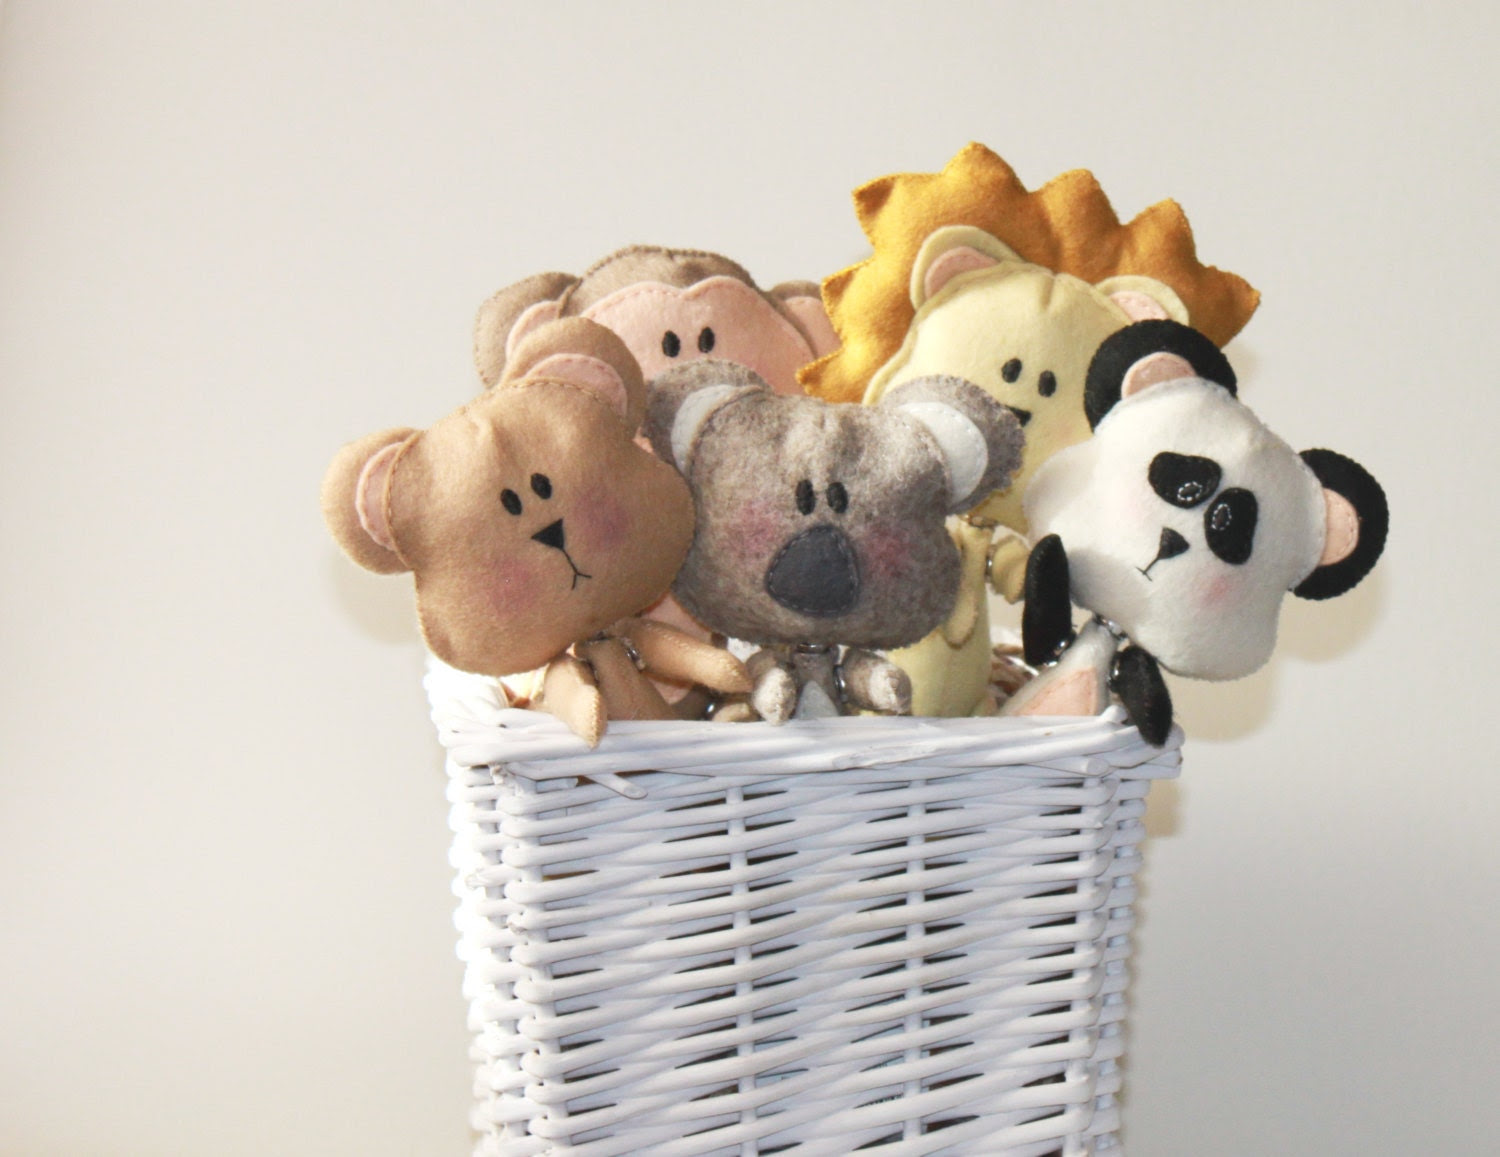 Zoo animal Puzzle / Stuffed animal toy puzzle - Bear, koala, lion, panda and monkey wool felt